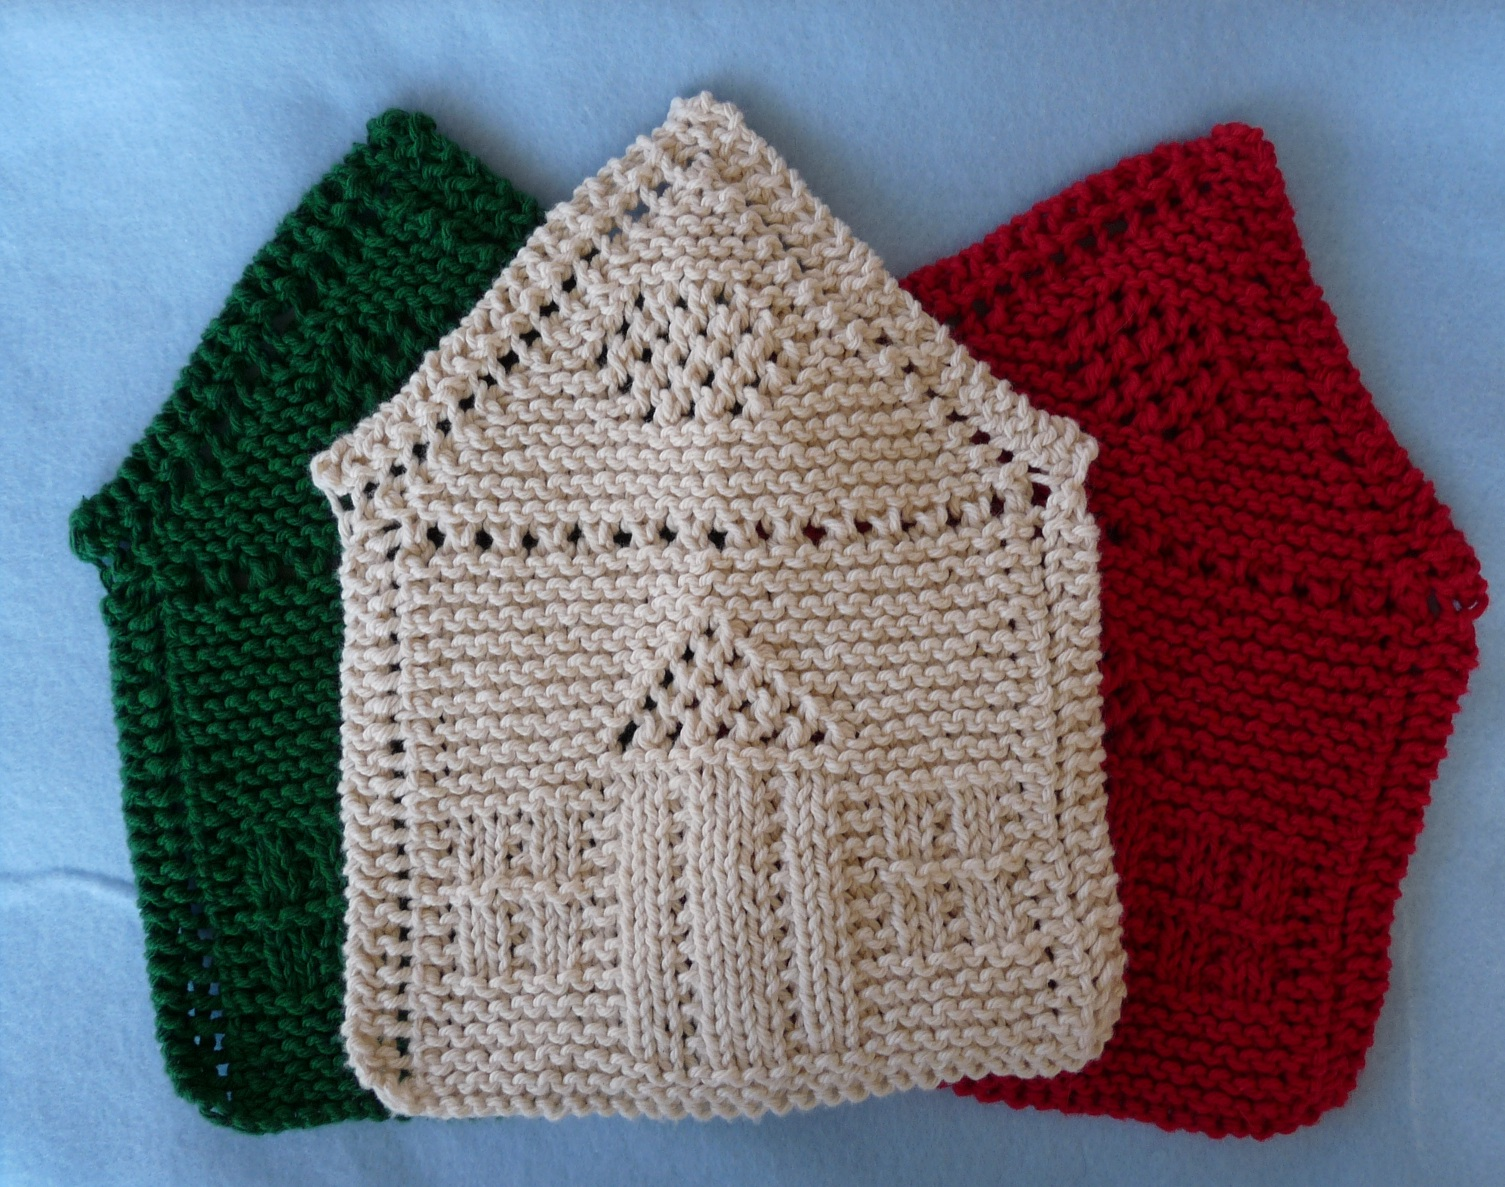 Knitting Patterns Dishcloths